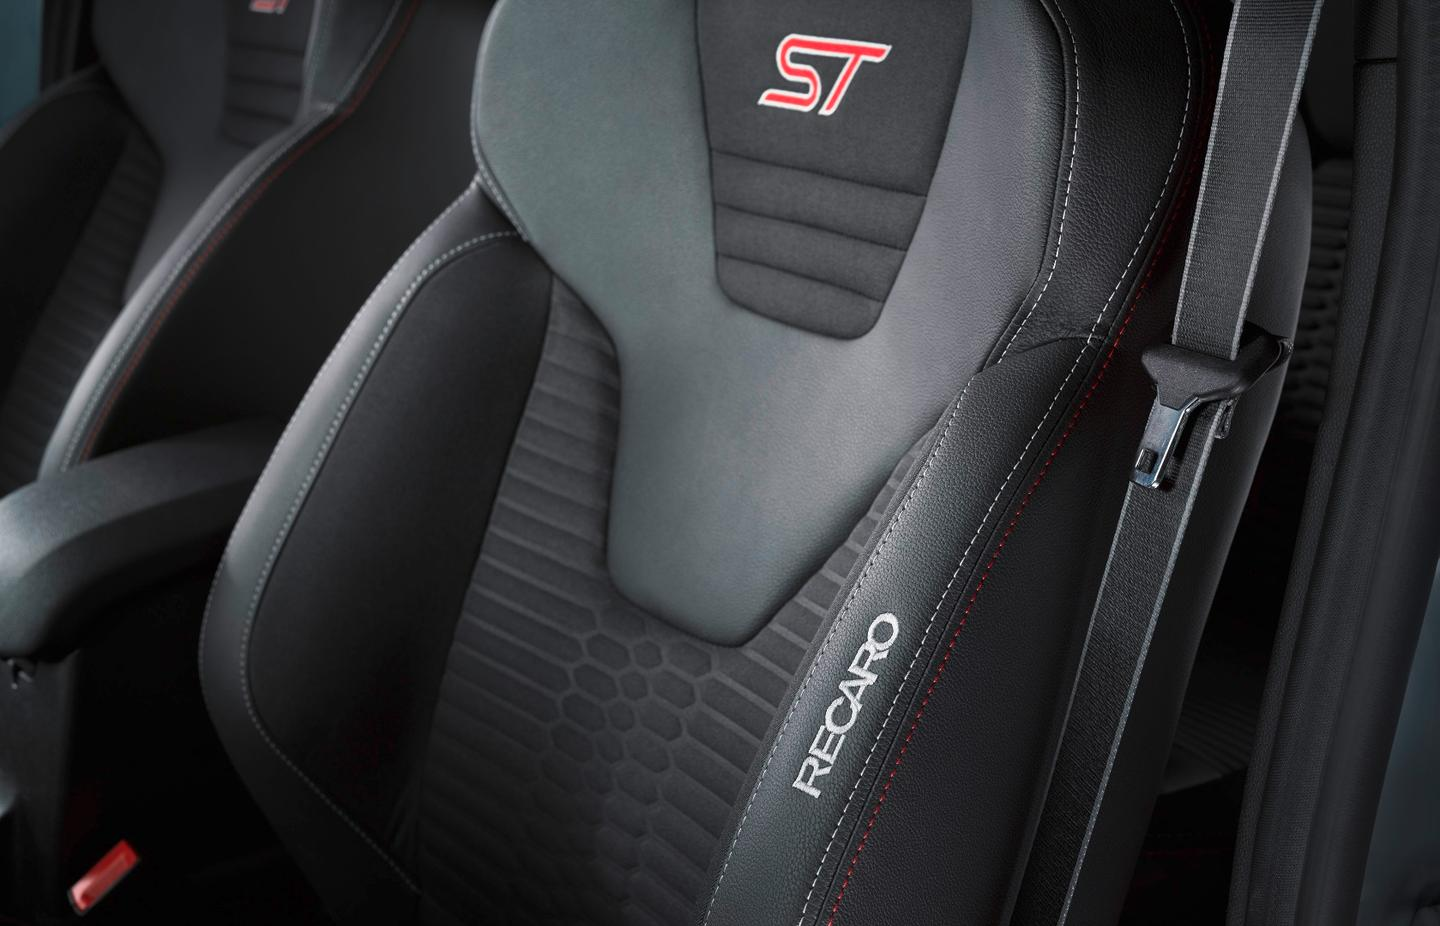 The Fiesta ST's interior has been left largely untouched, although there wasn't much wrong with it in the first place